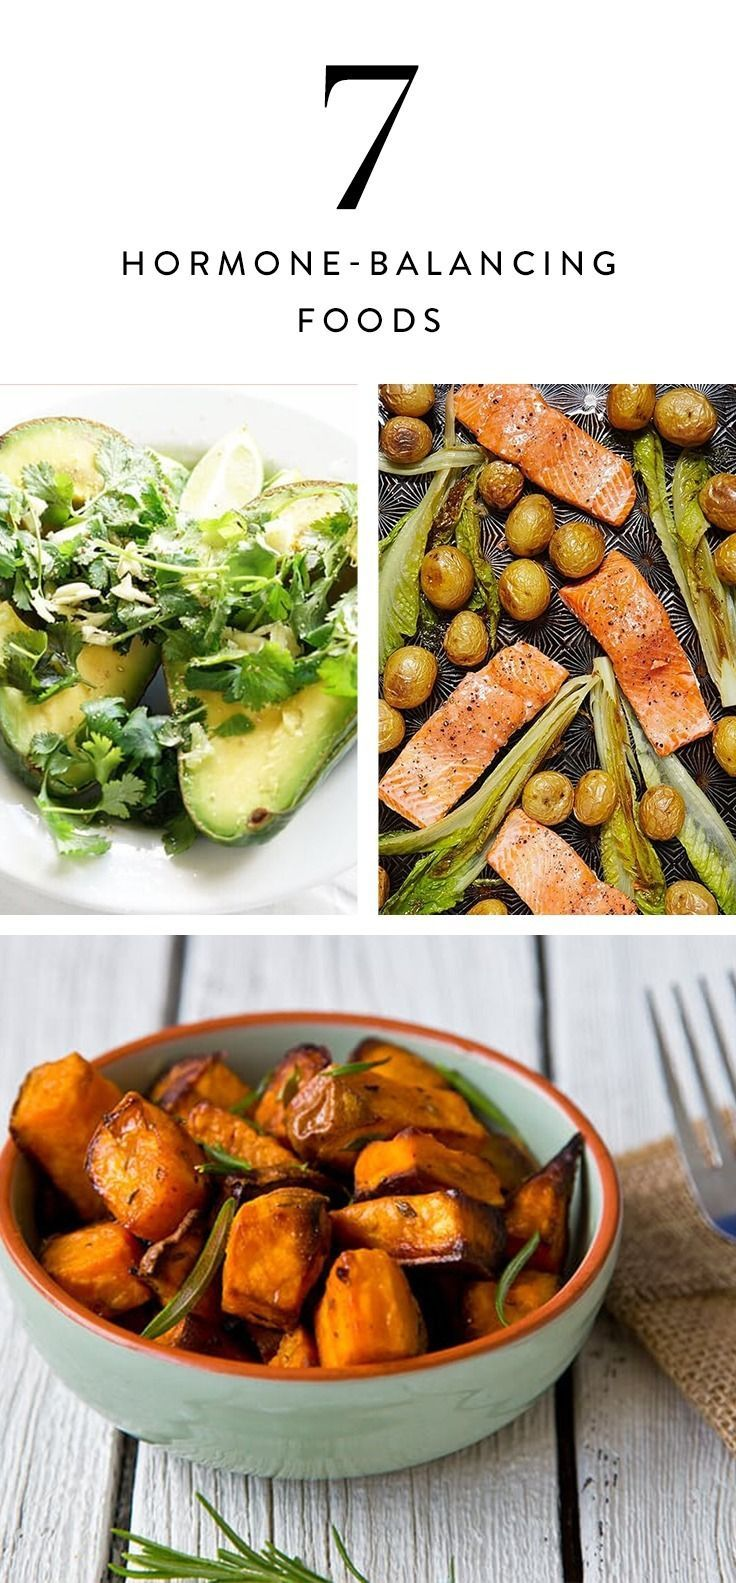 7 Hormone-Balancing Foods You Should Eat Every DayPureWow